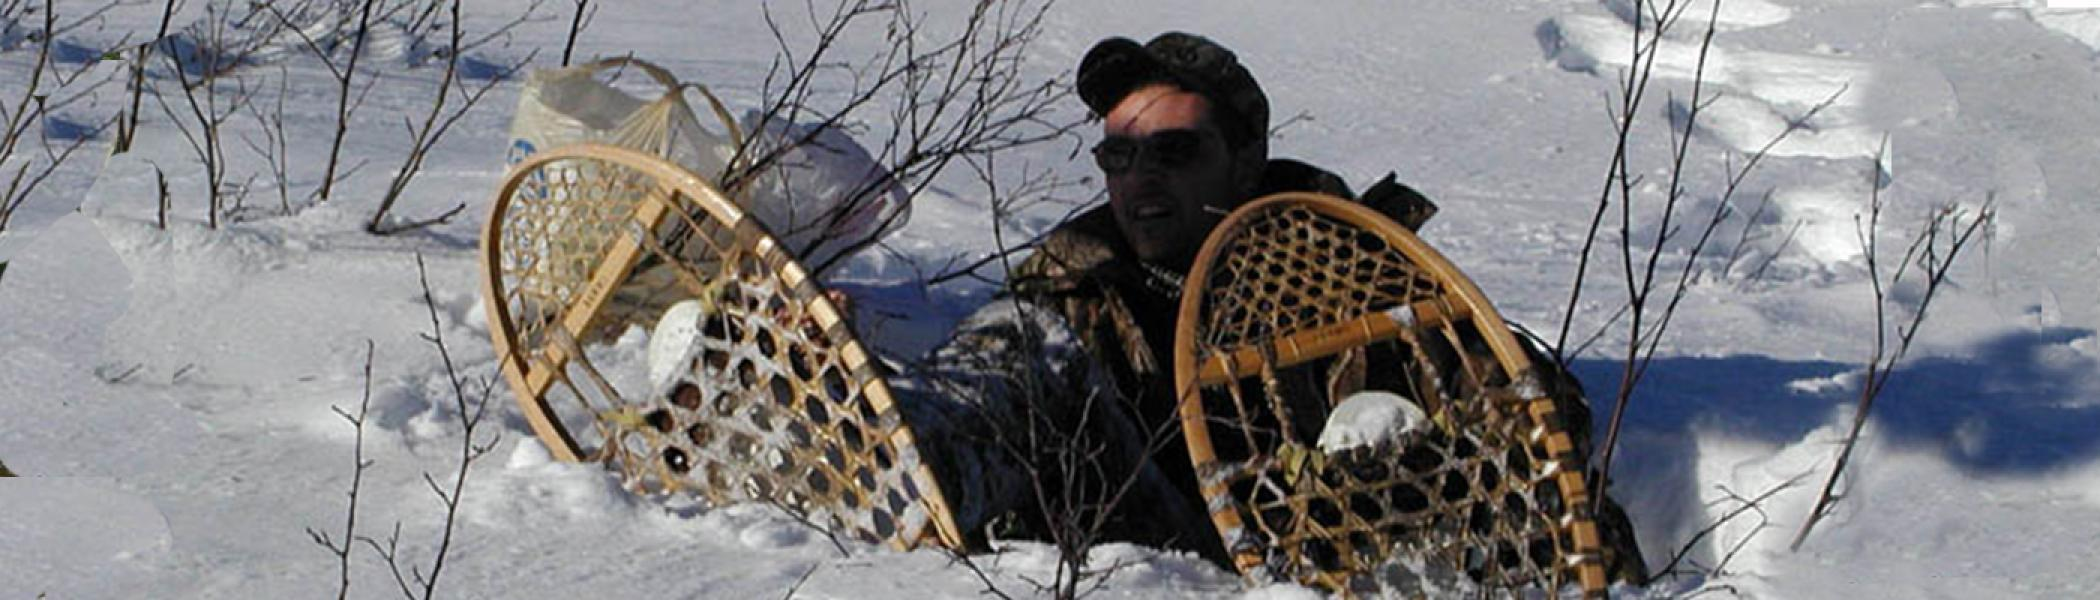 male sitting in deep snow with snow shoes on